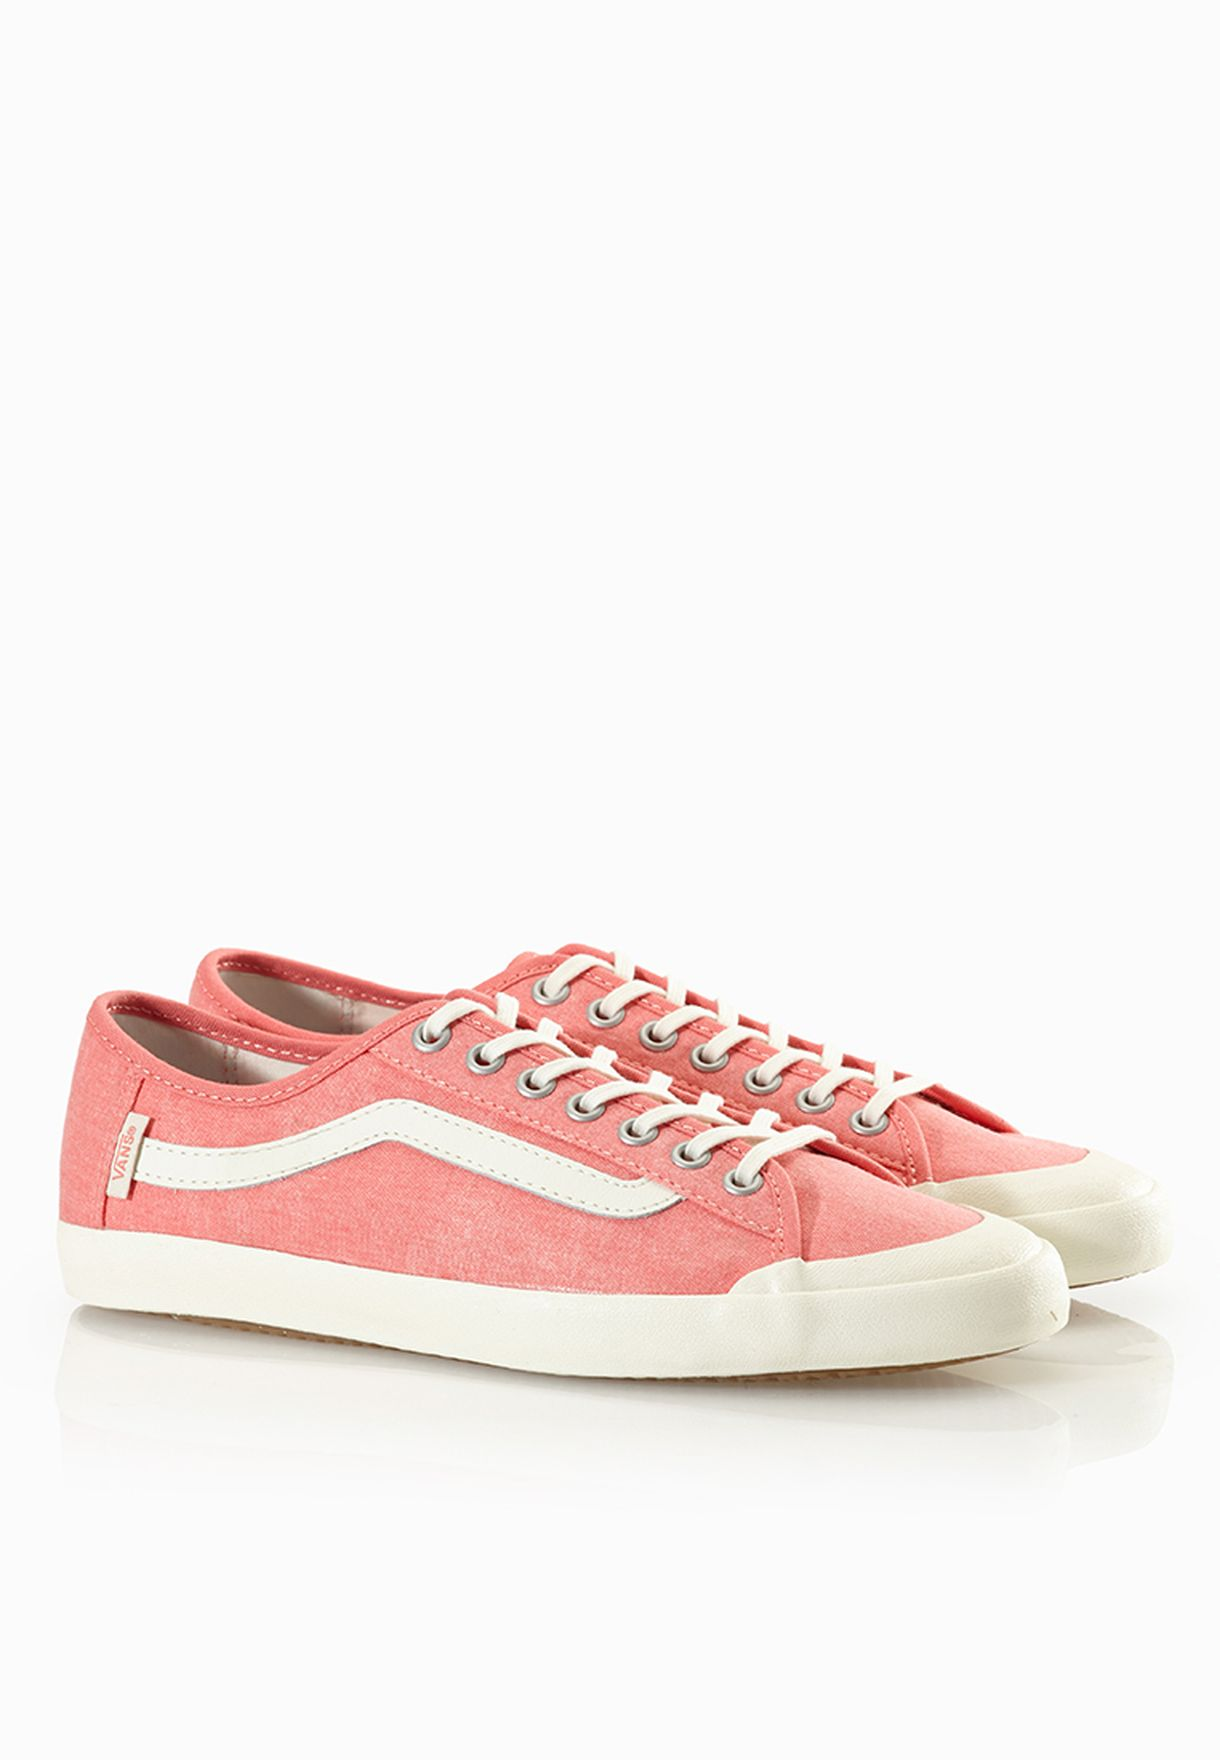 086d6cf482ff80 Shop Vans pink Happy Daze Sneakers for Women in Qatar - VA088SH41XYG